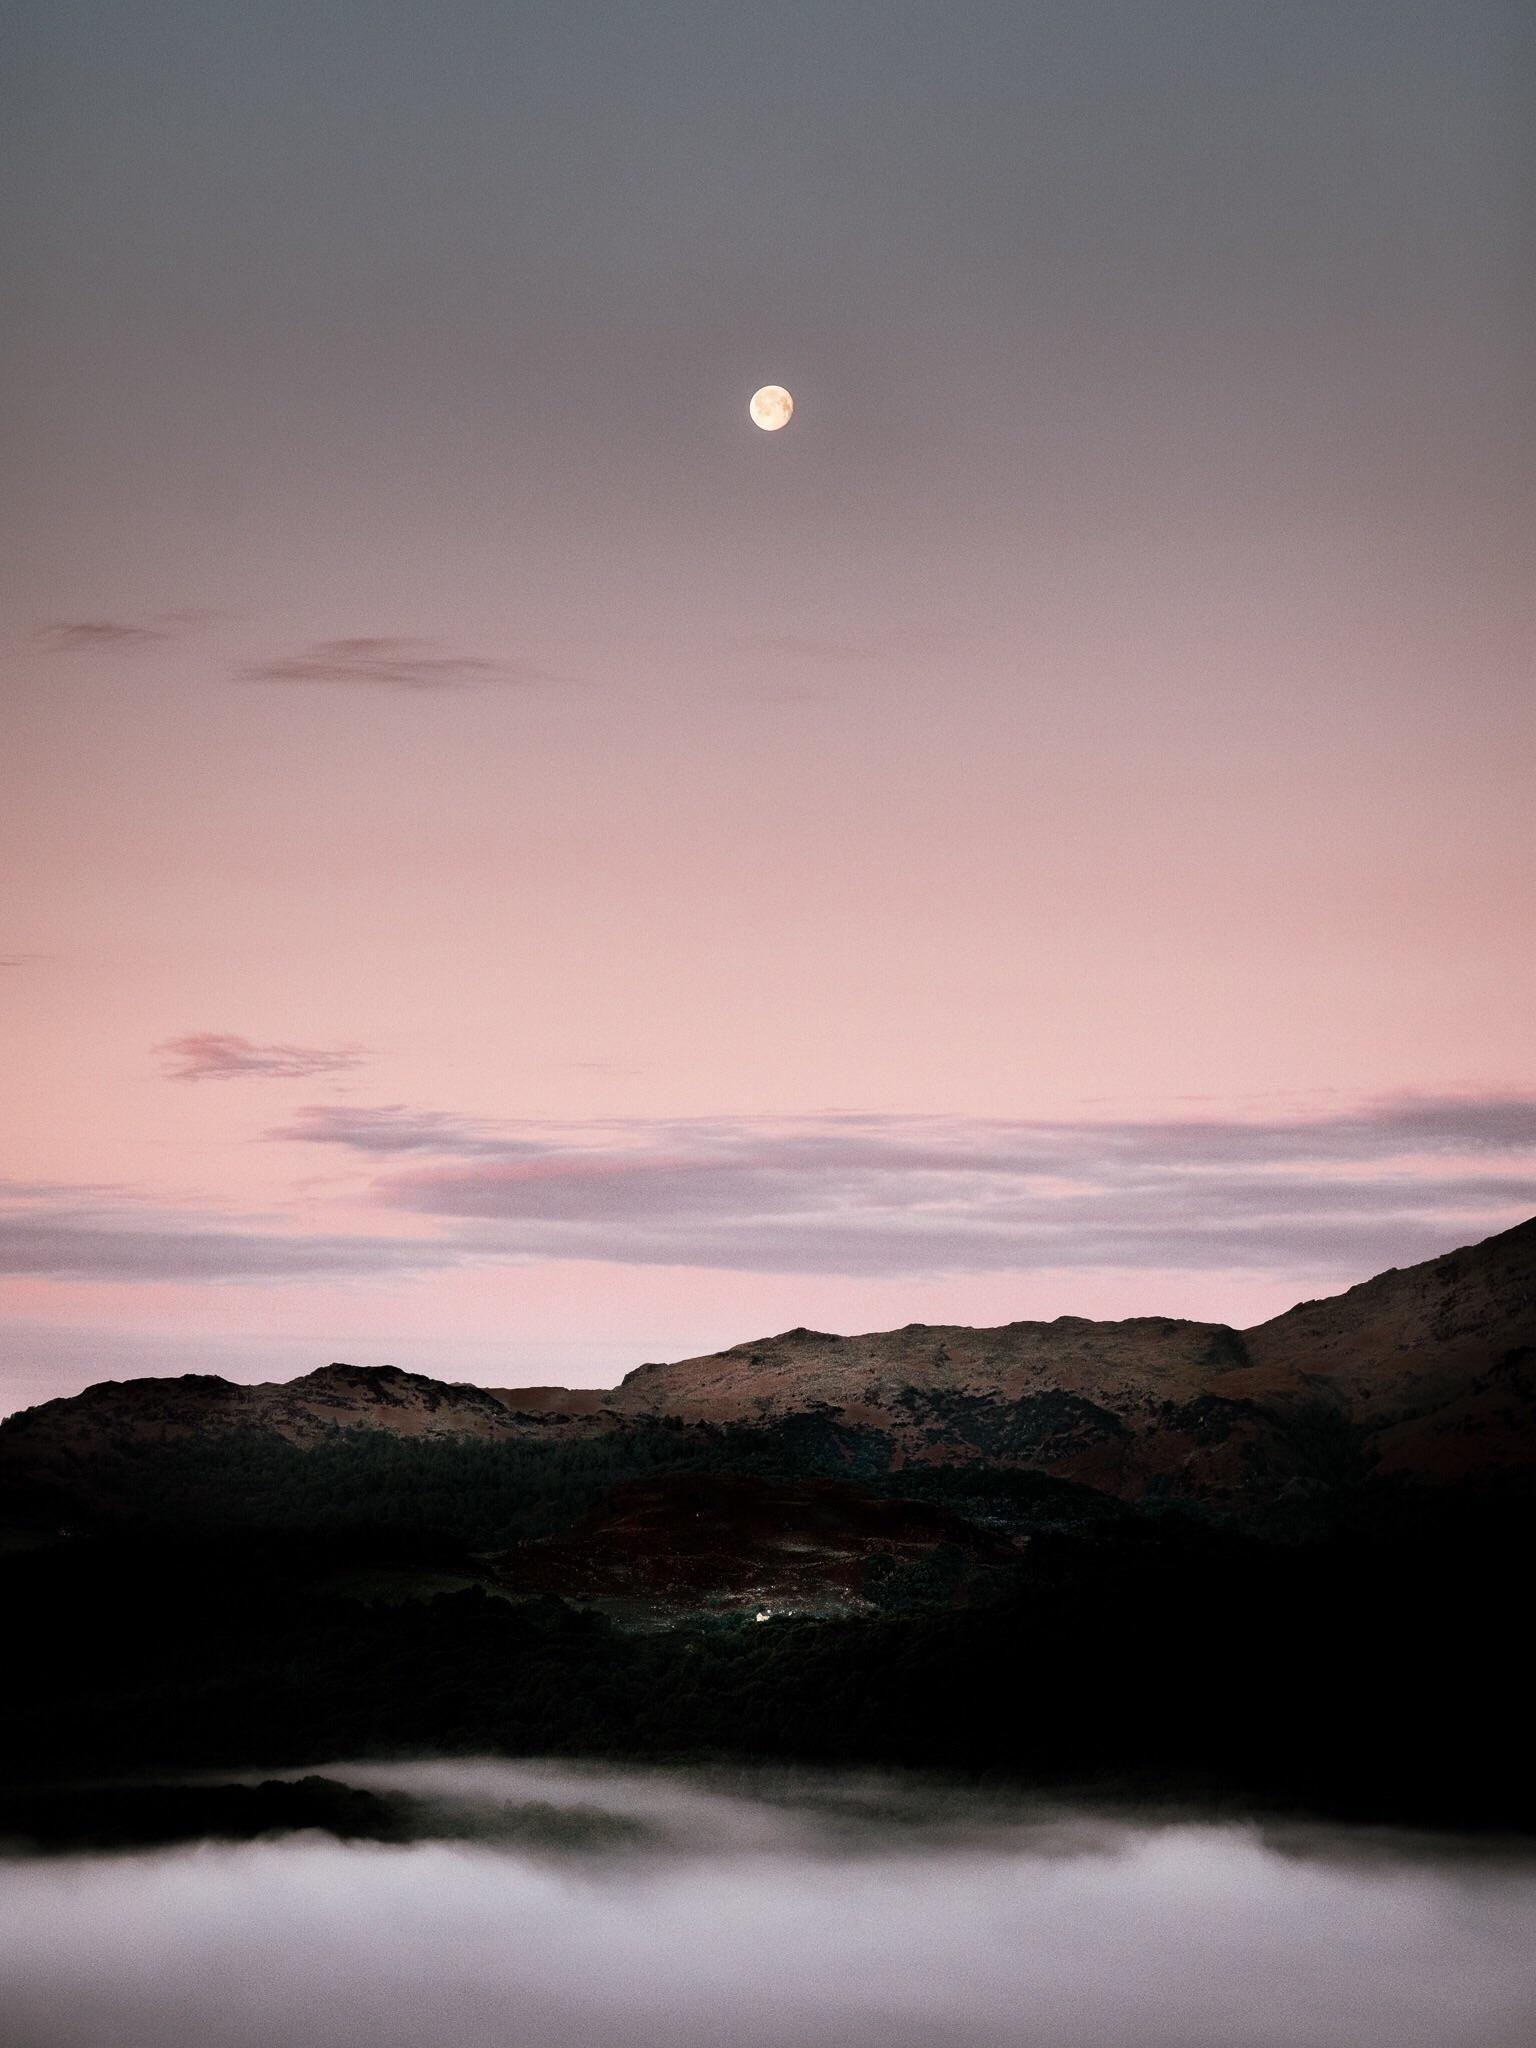 Moonrise over the Lakeland Mountains [OC] [1536x2048] Want an iPad